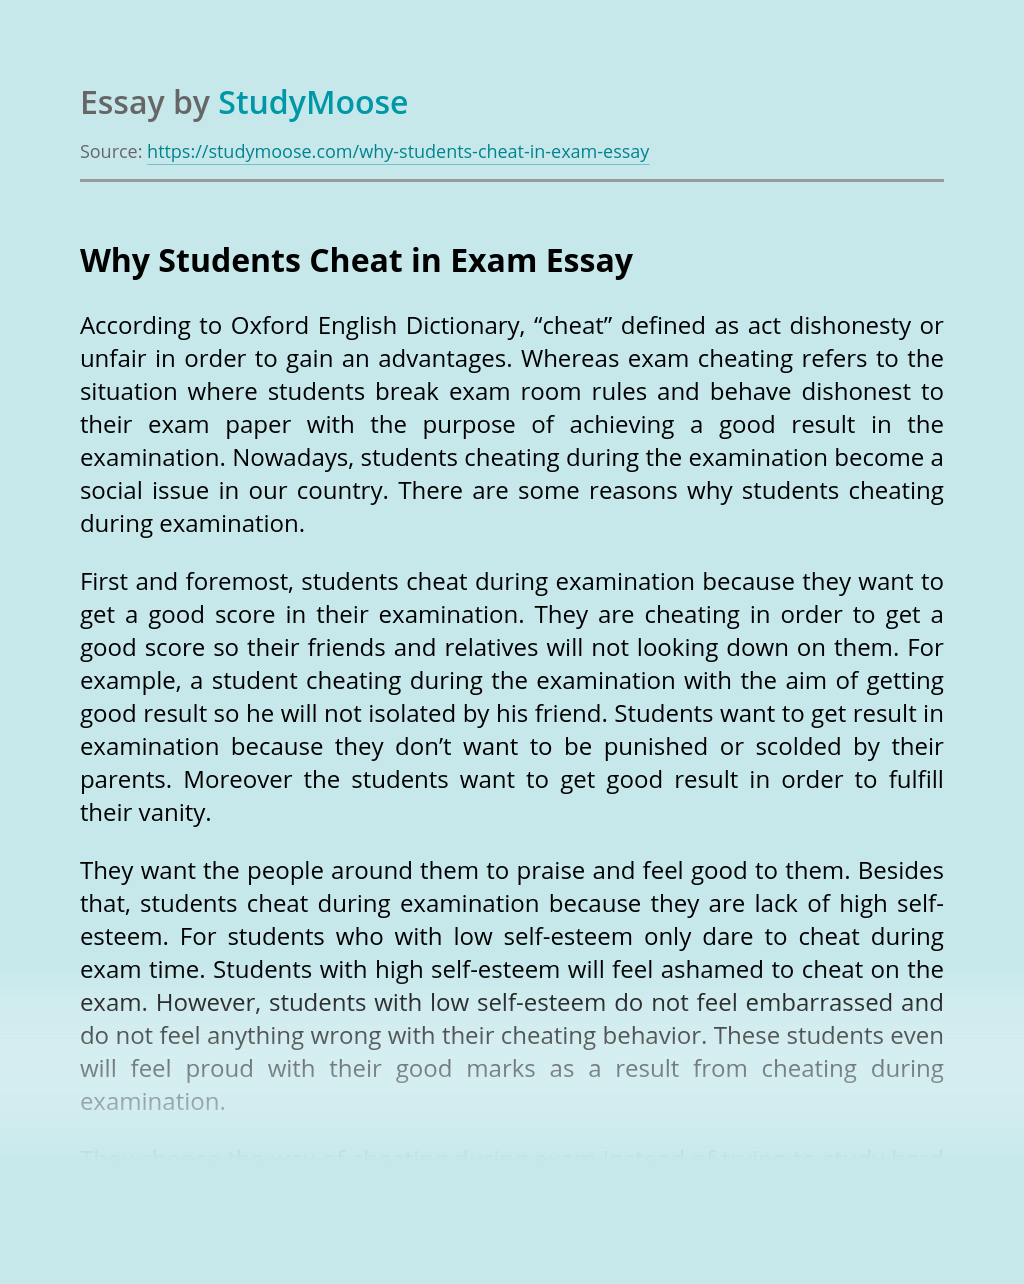 Why Students Cheat in Exam